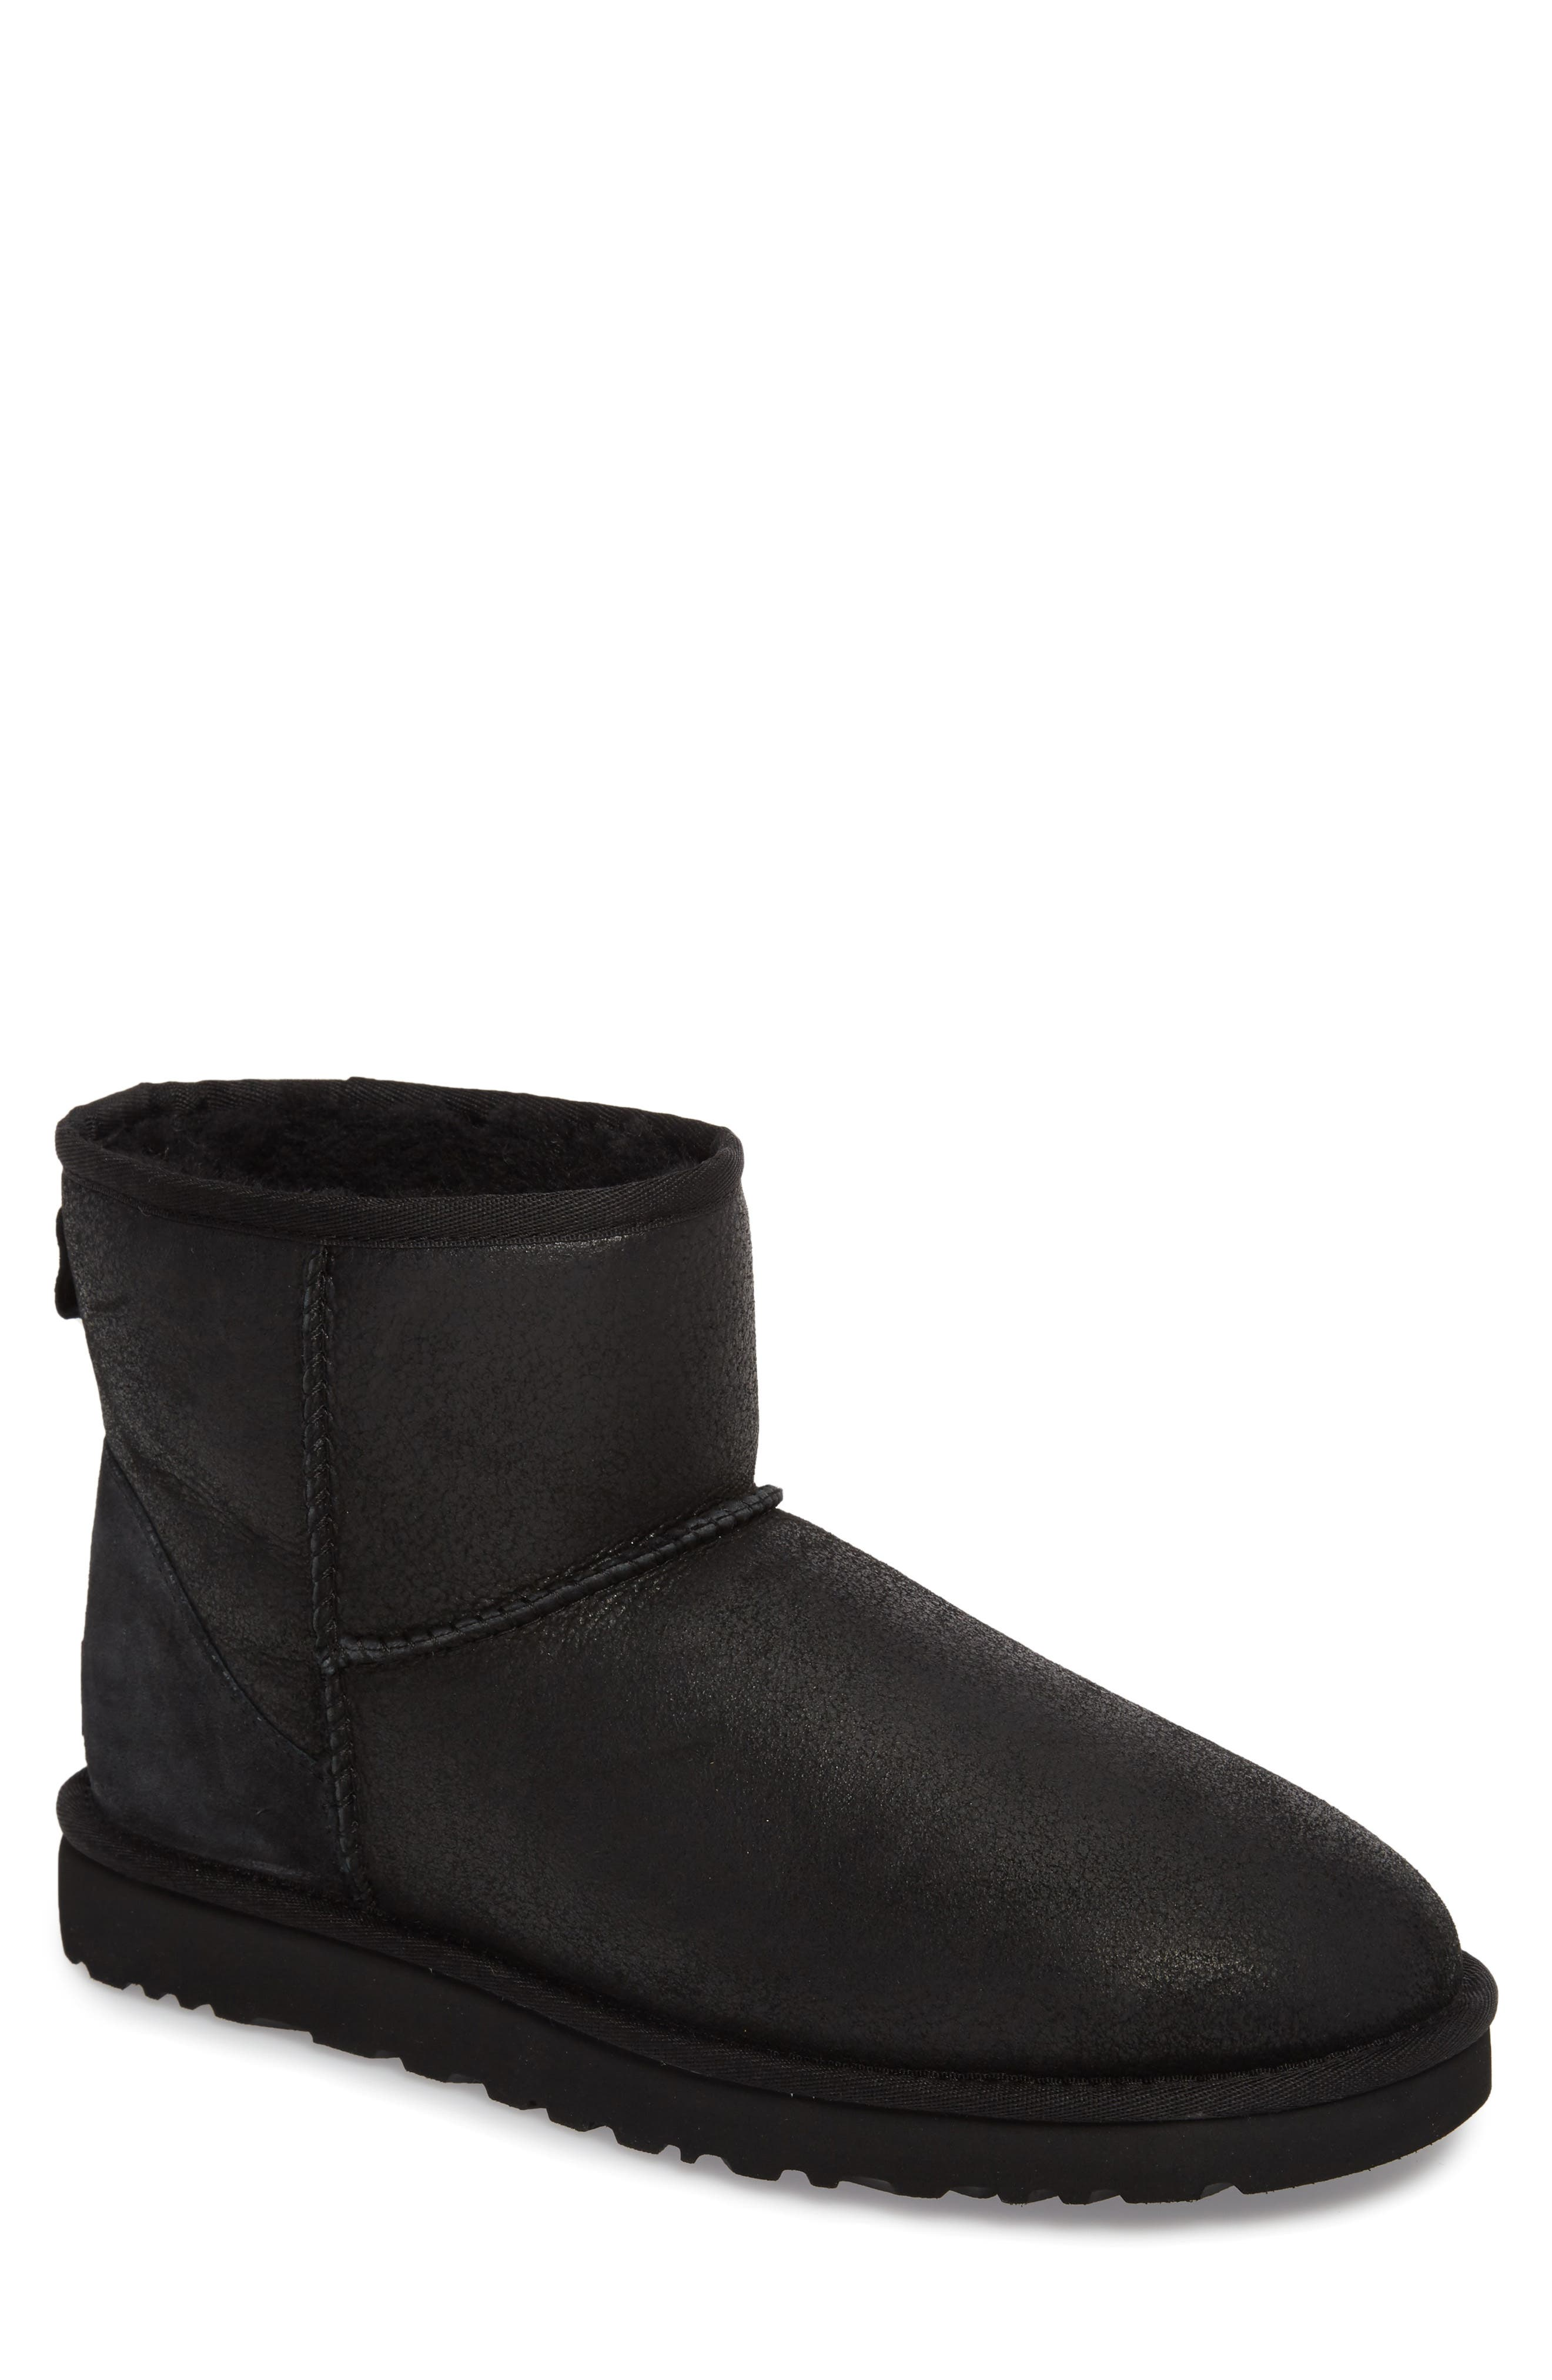 Classic Mini Bomber Boot with Genuine Shearling or UGGpure<sup>™</sup> Lining,                         Main,                         color, BOMBER JACKET BLACK